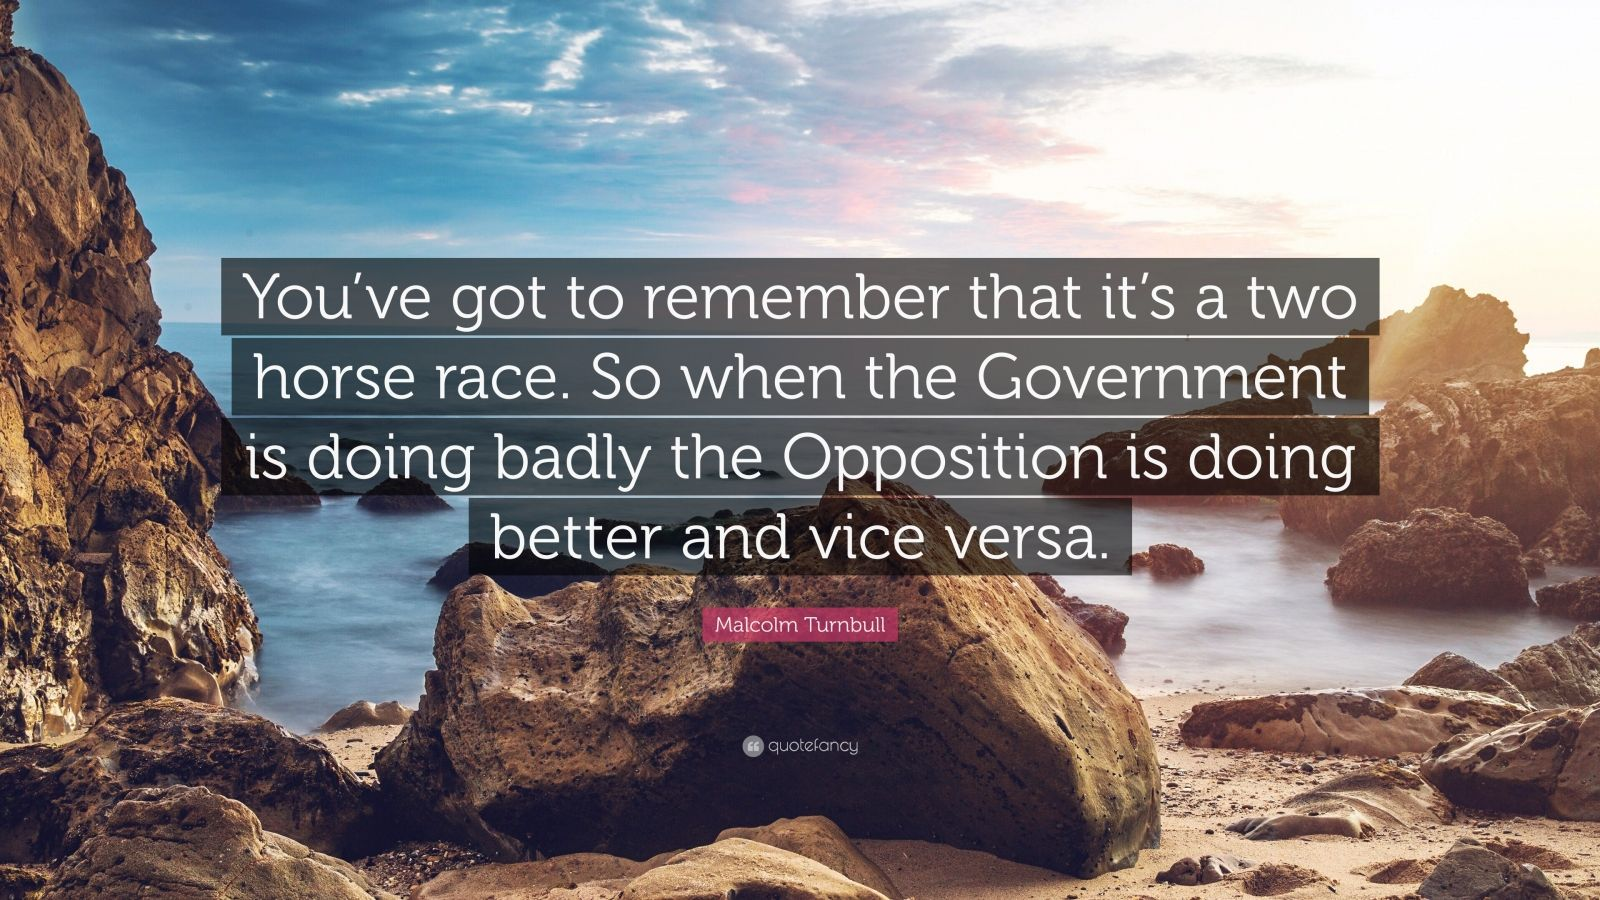 """Malcolm Turnbull Quote: """"You've got to remember that it's a two horse race. So when the Government is doing badly the Opposition is doing better and vice versa."""""""